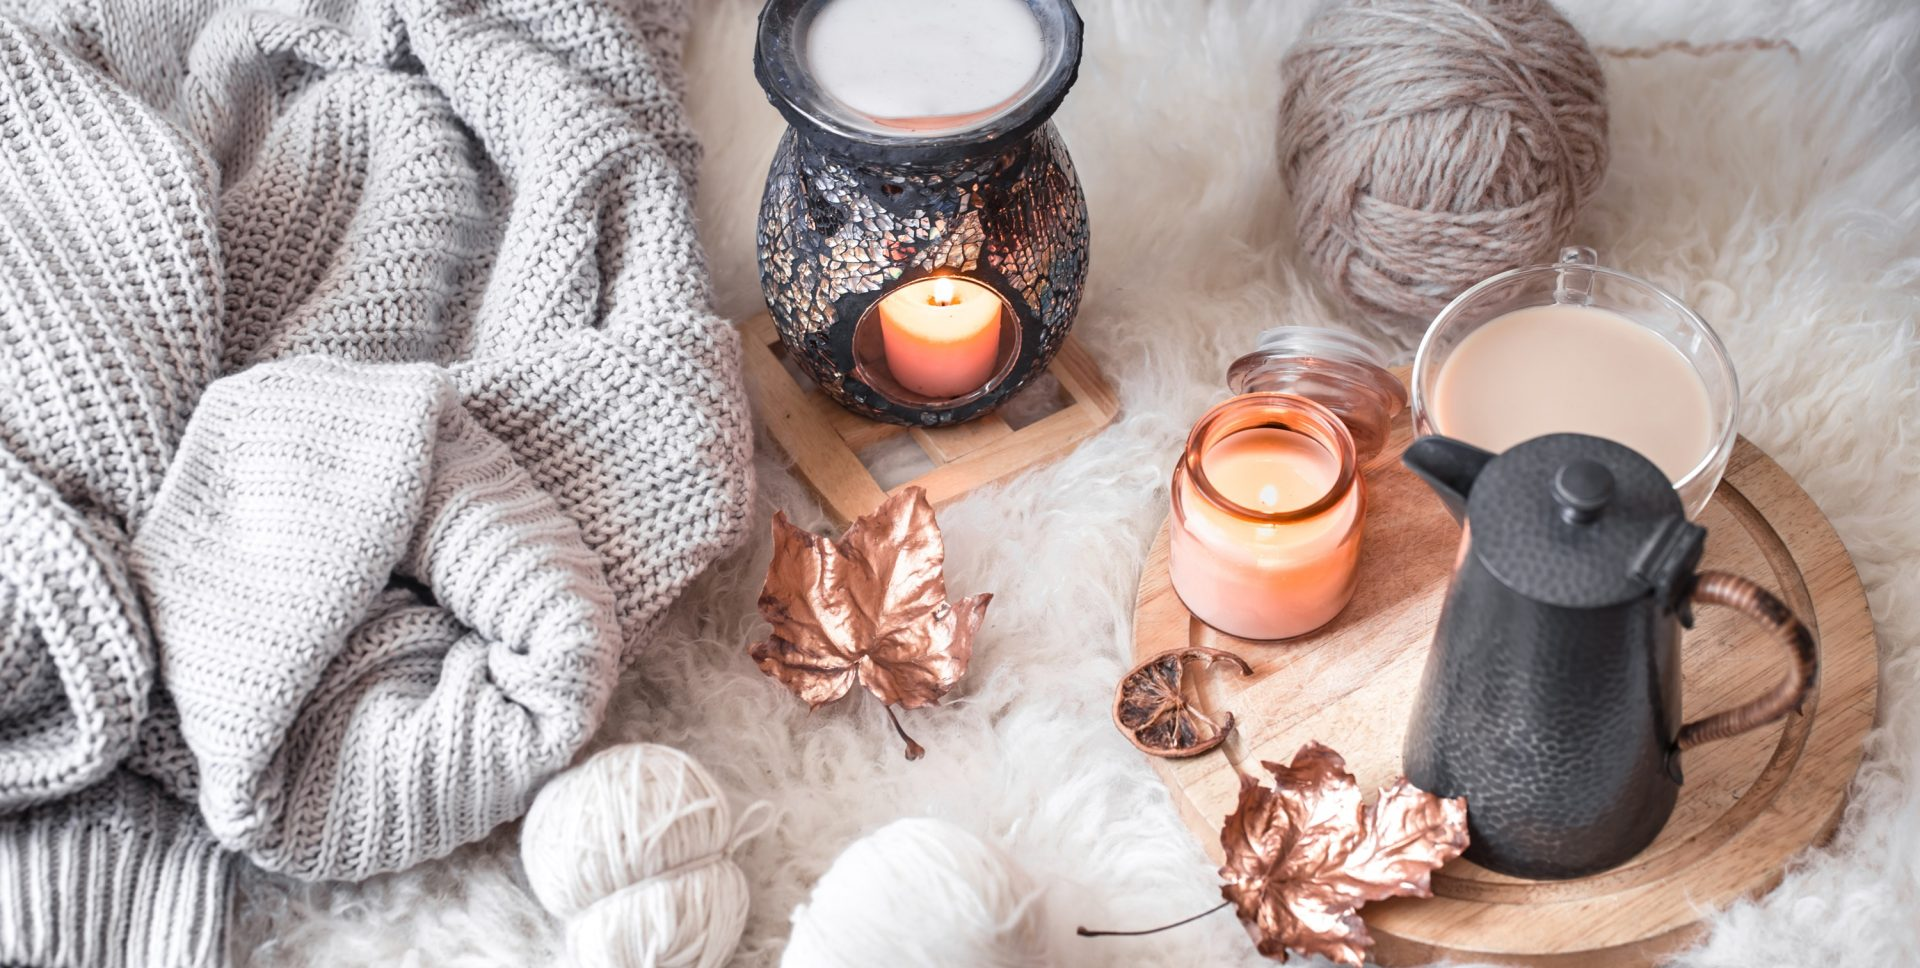 Ten easy ways to cosy up the home for winter